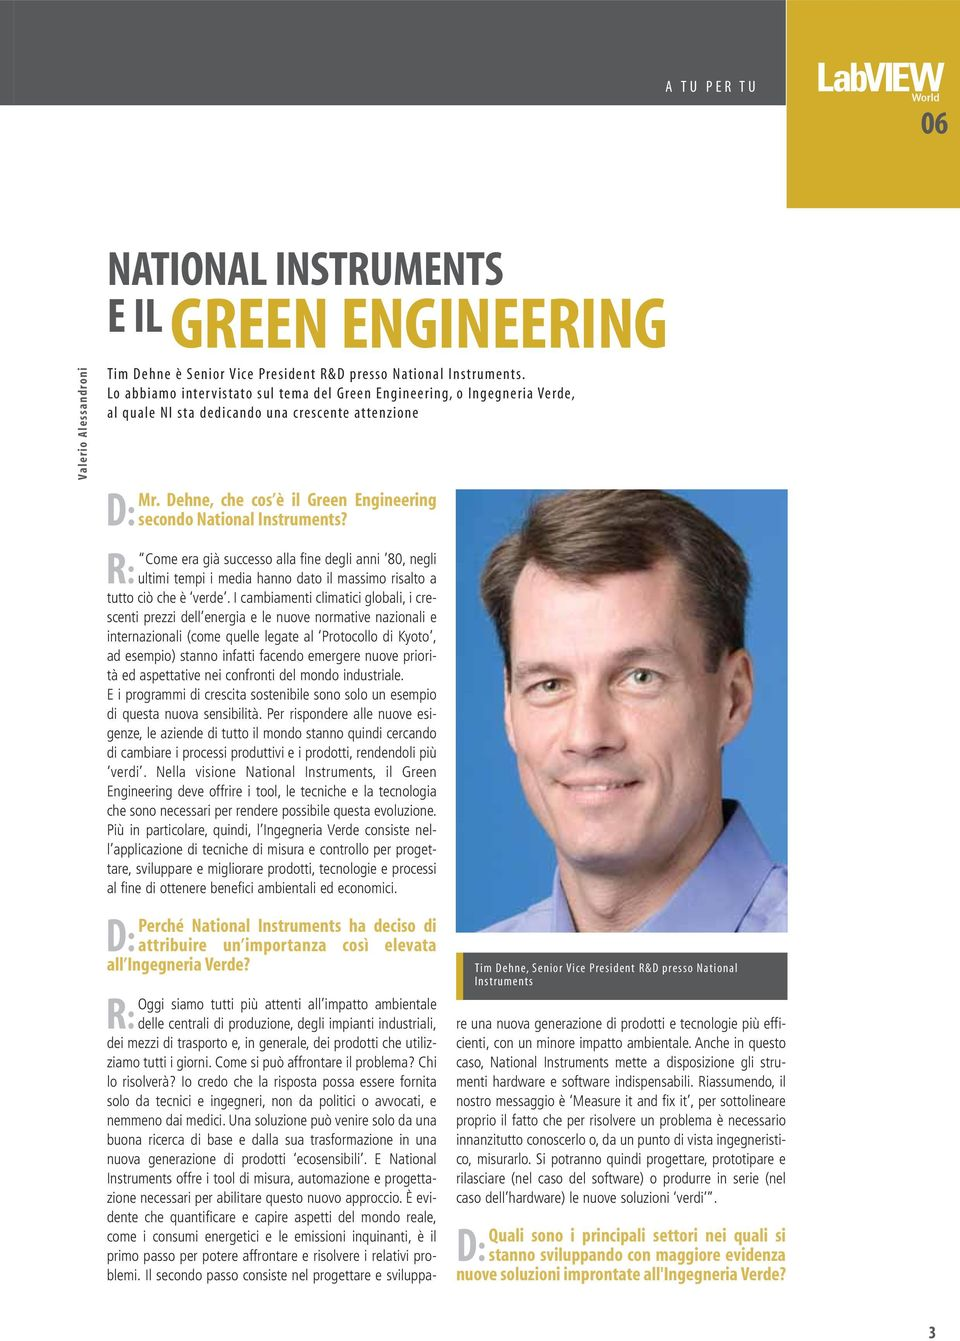 Dehne, che cos è il Green Engineering D: secondo National Instruments?